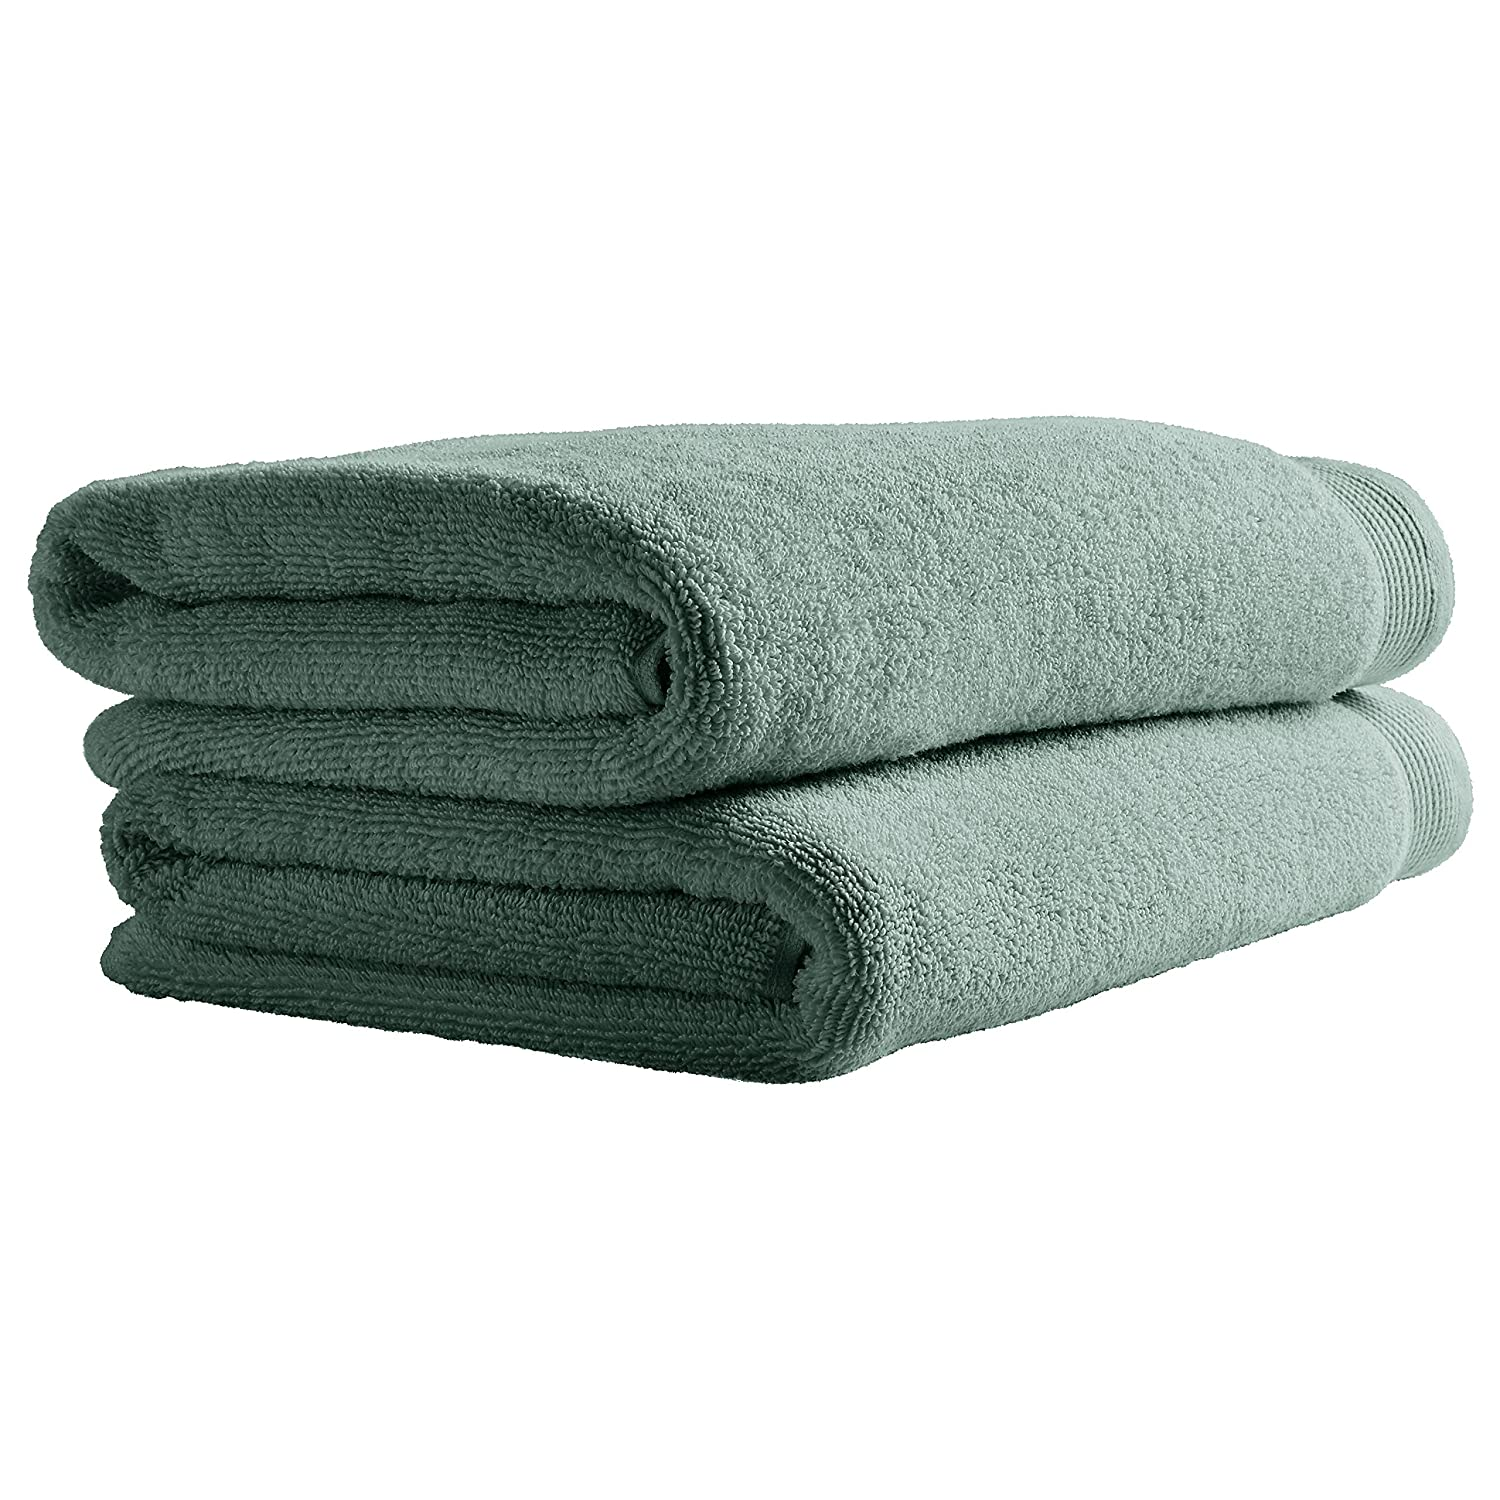 Stone & Beam Lagoon Organic Cotton Bathroom Towels